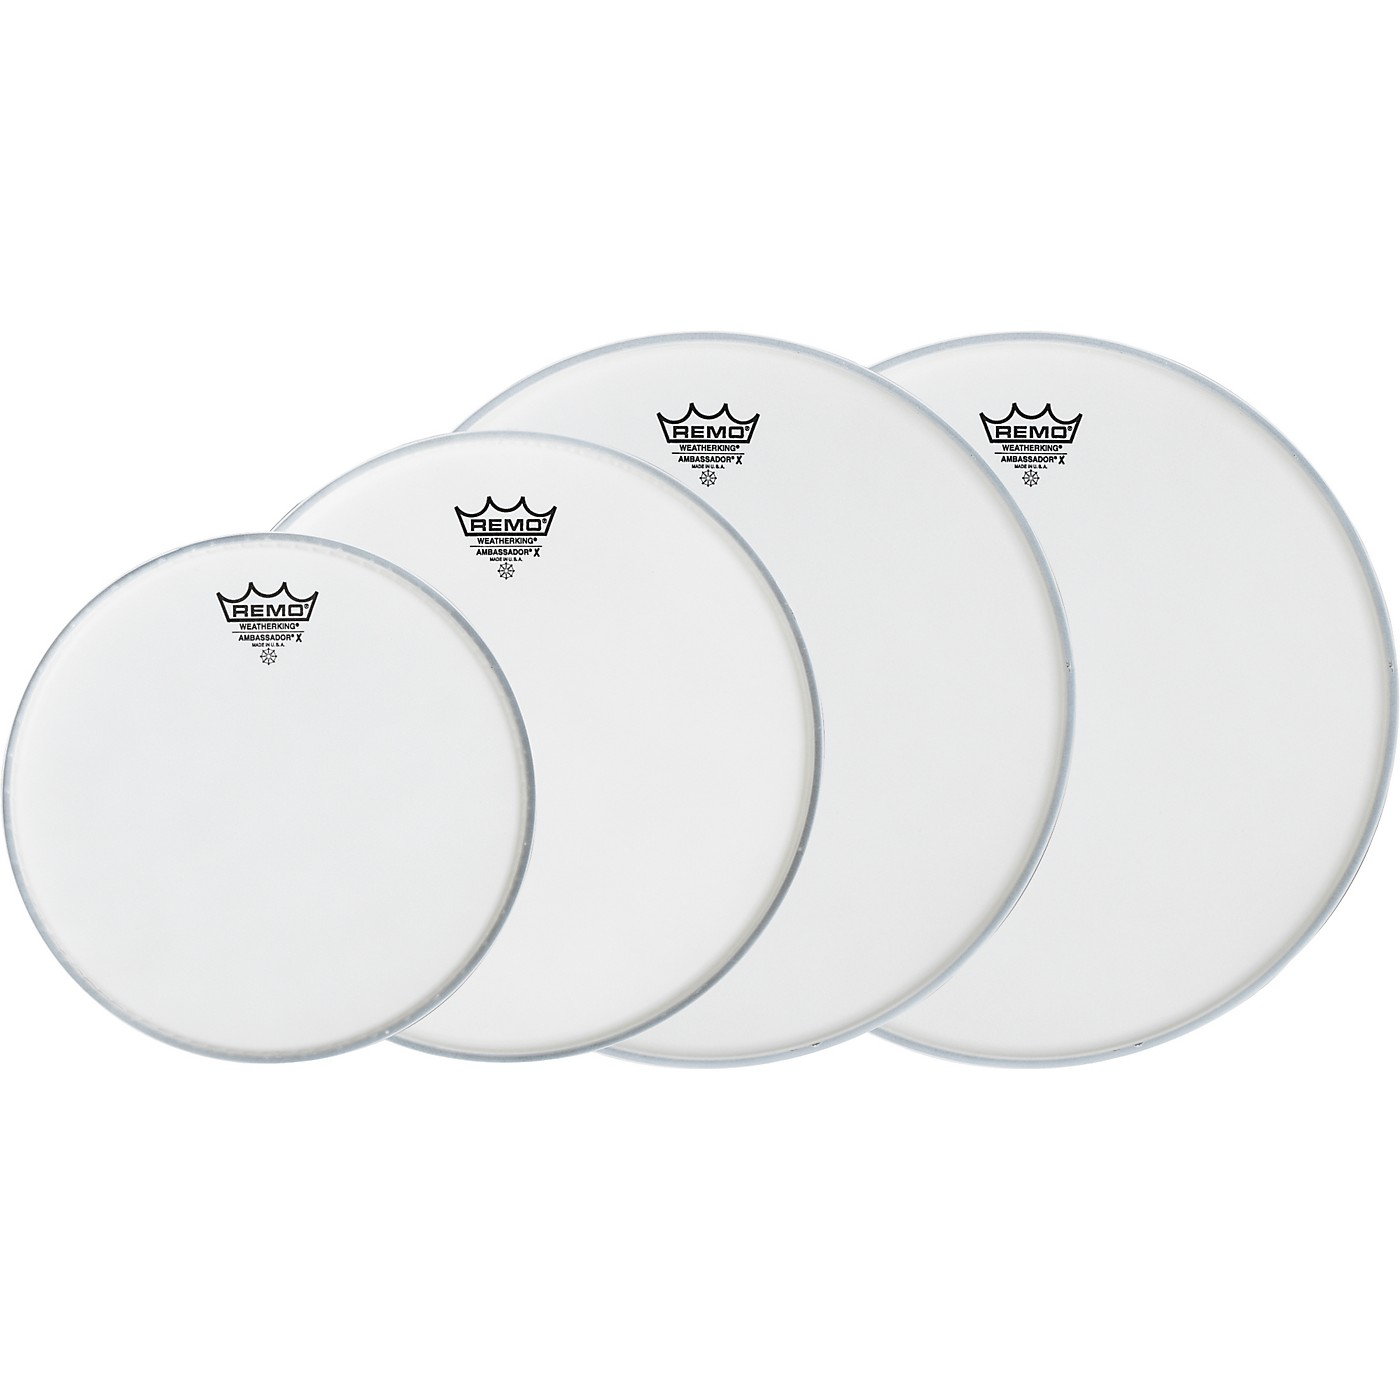 Remo Ambassador X Fusion Drumhead Pack, Buy 3 Get a Free 14 Inch Head thumbnail